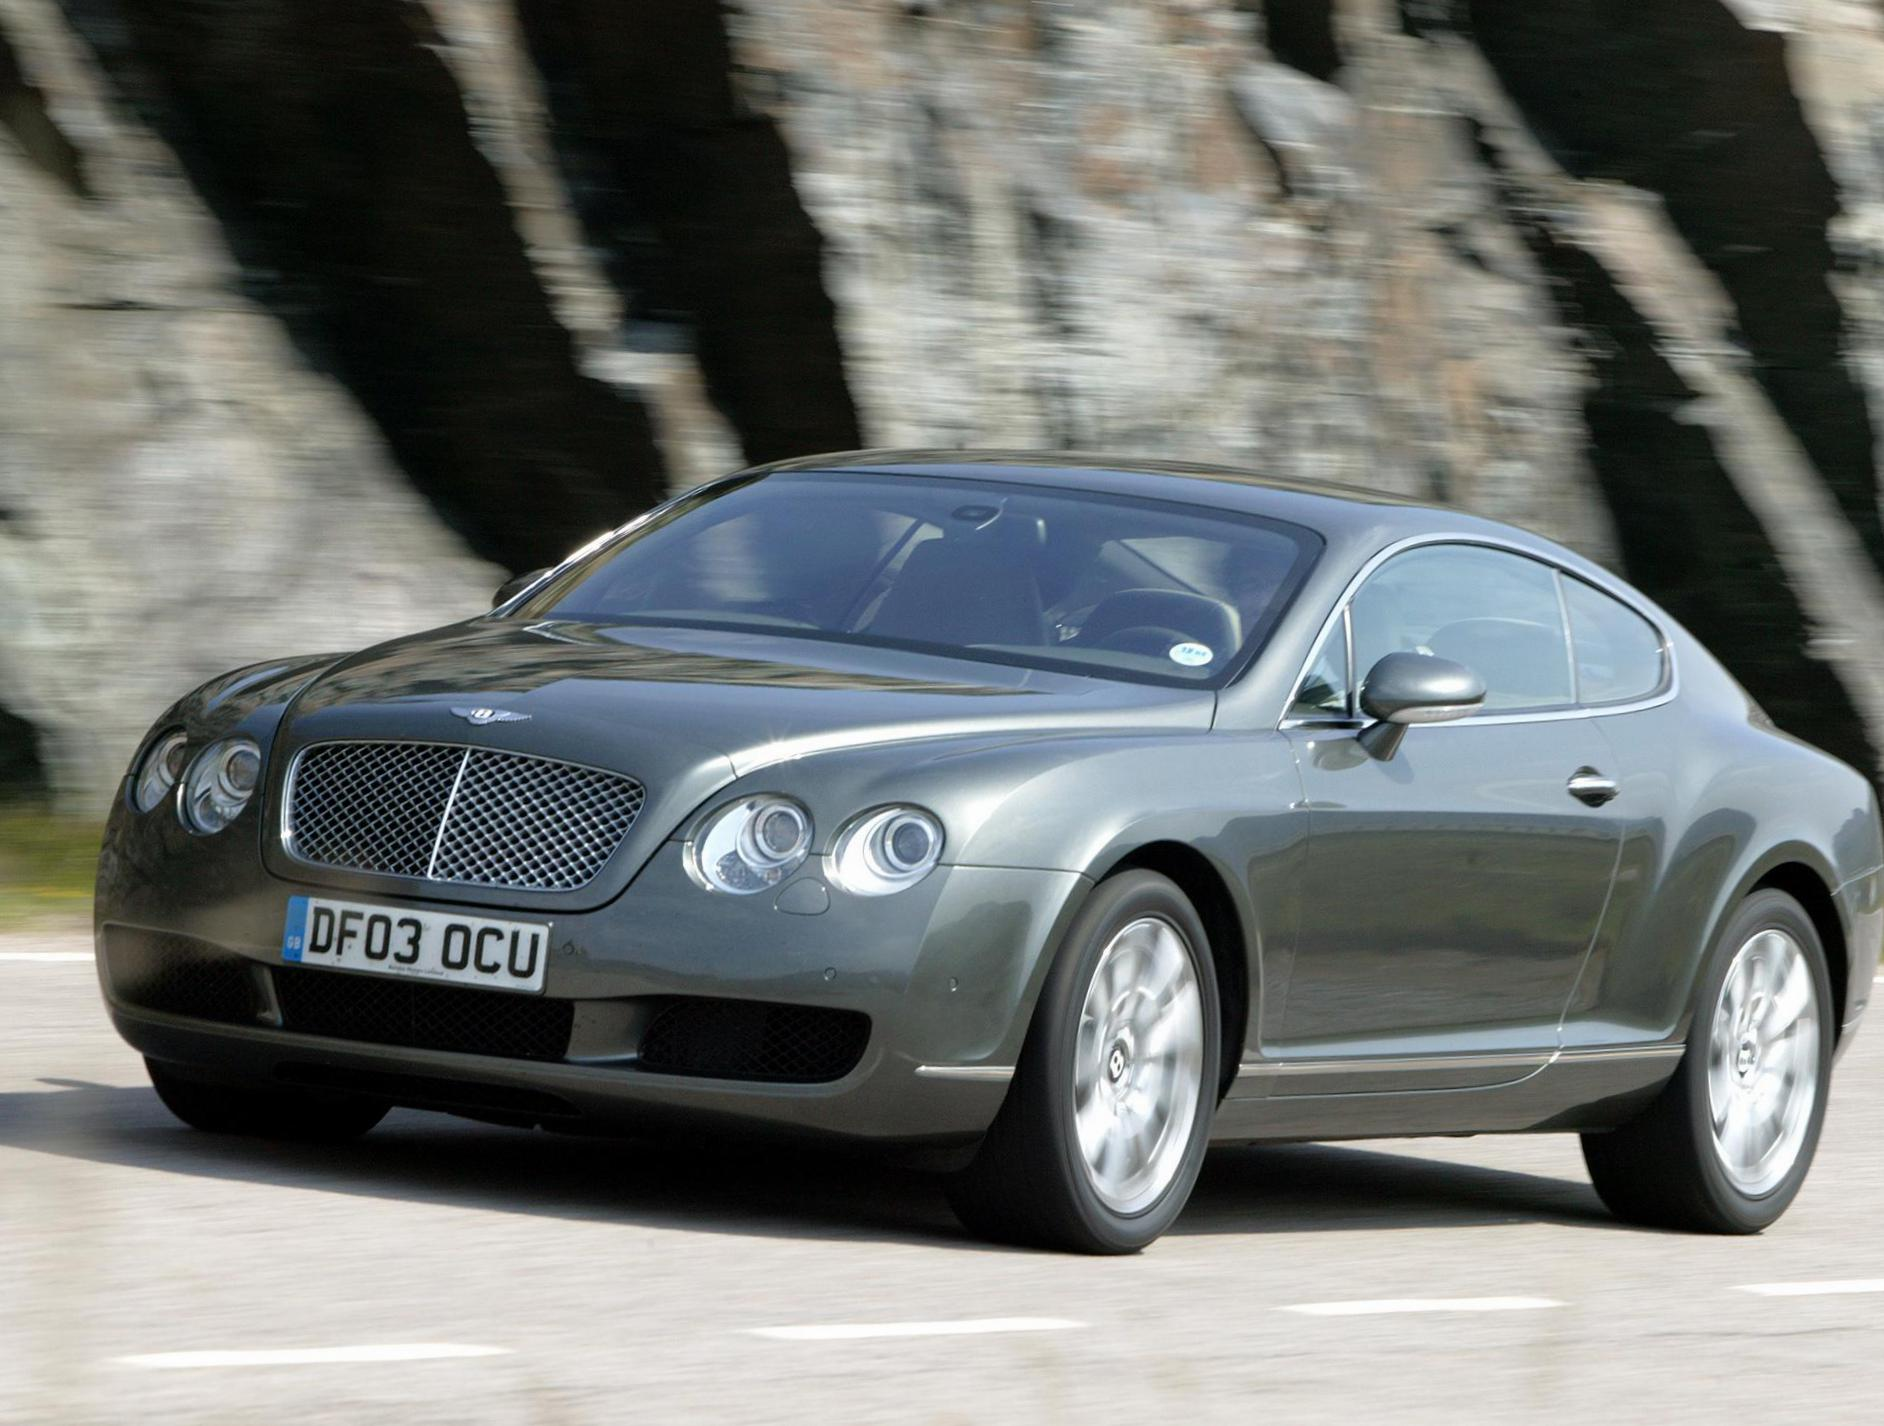 Continental GT Bentley sale coupe